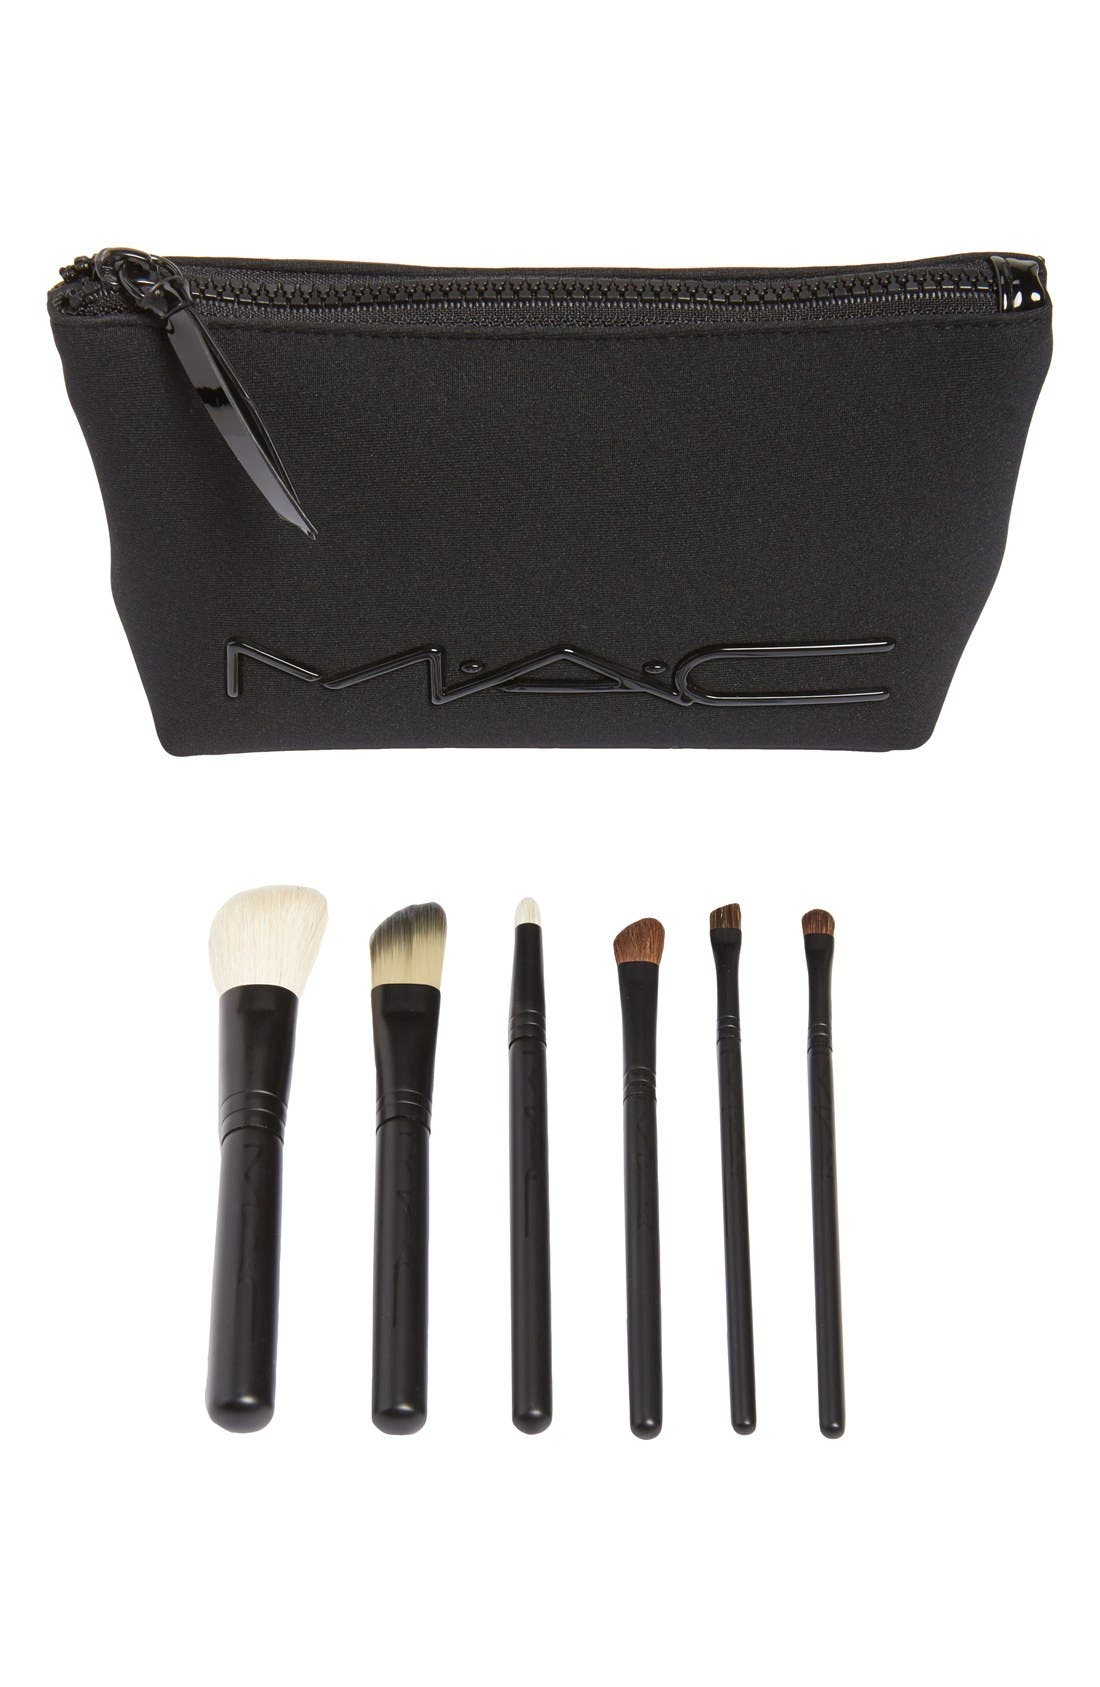 M·A·C 'Look in a Box - Advanced' Travel Brush Kit,                             Main thumbnail 1, color,                             000